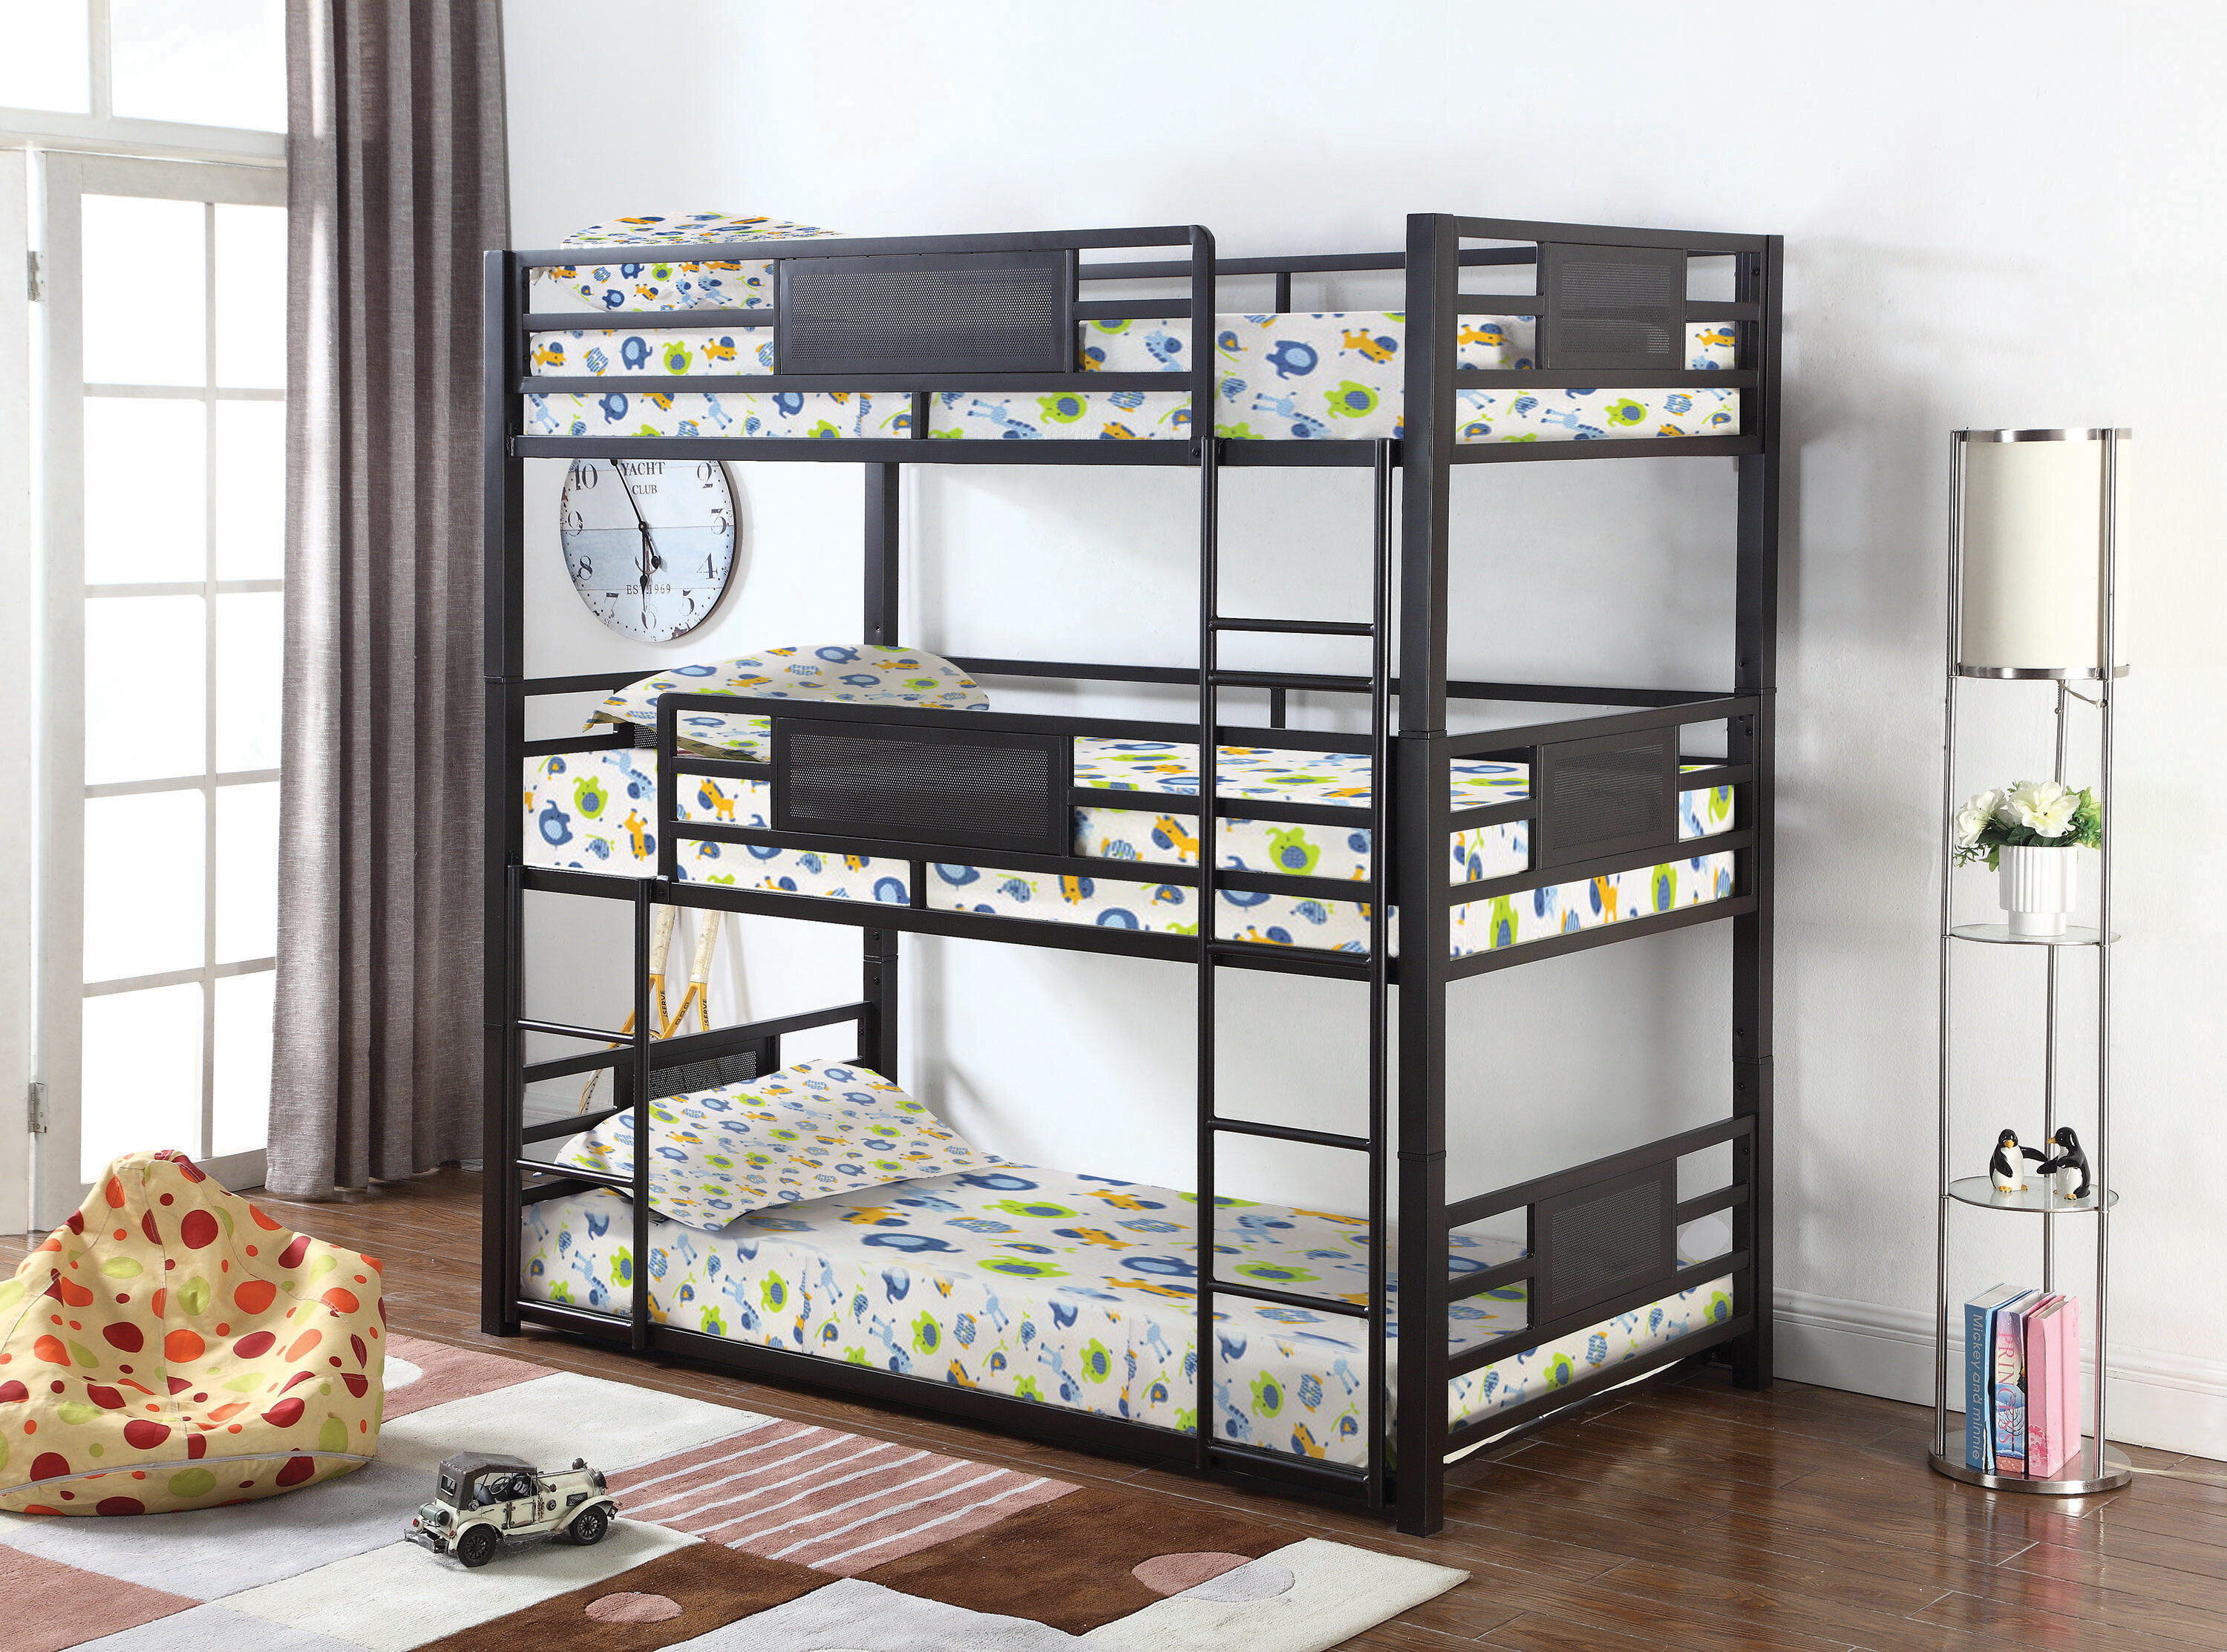 Image result for cheap triple bunk bed